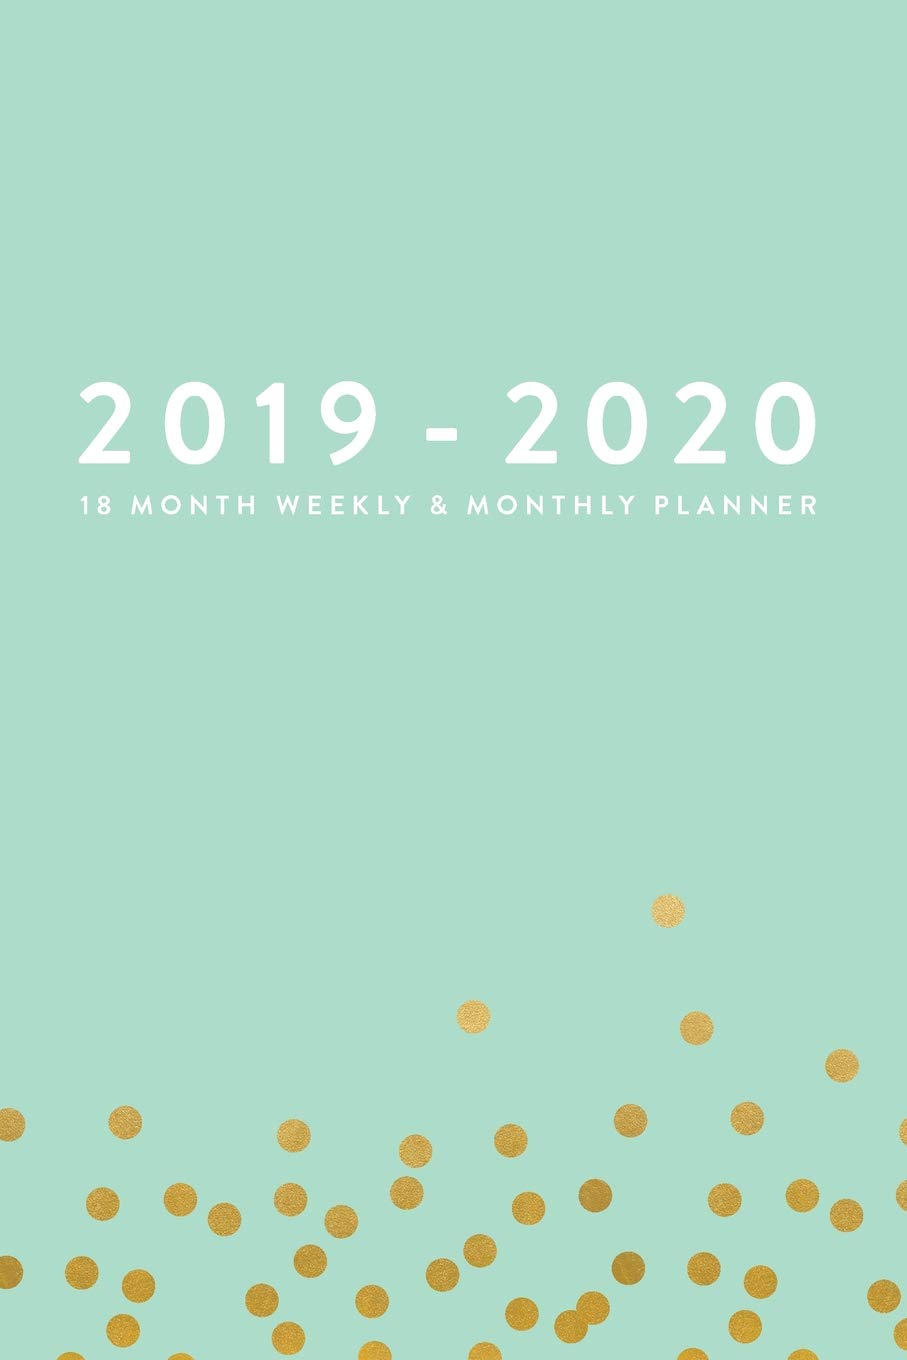 Amazon.com: 2019 - 2020, 18 Month Weekly & Monthly Planner ...